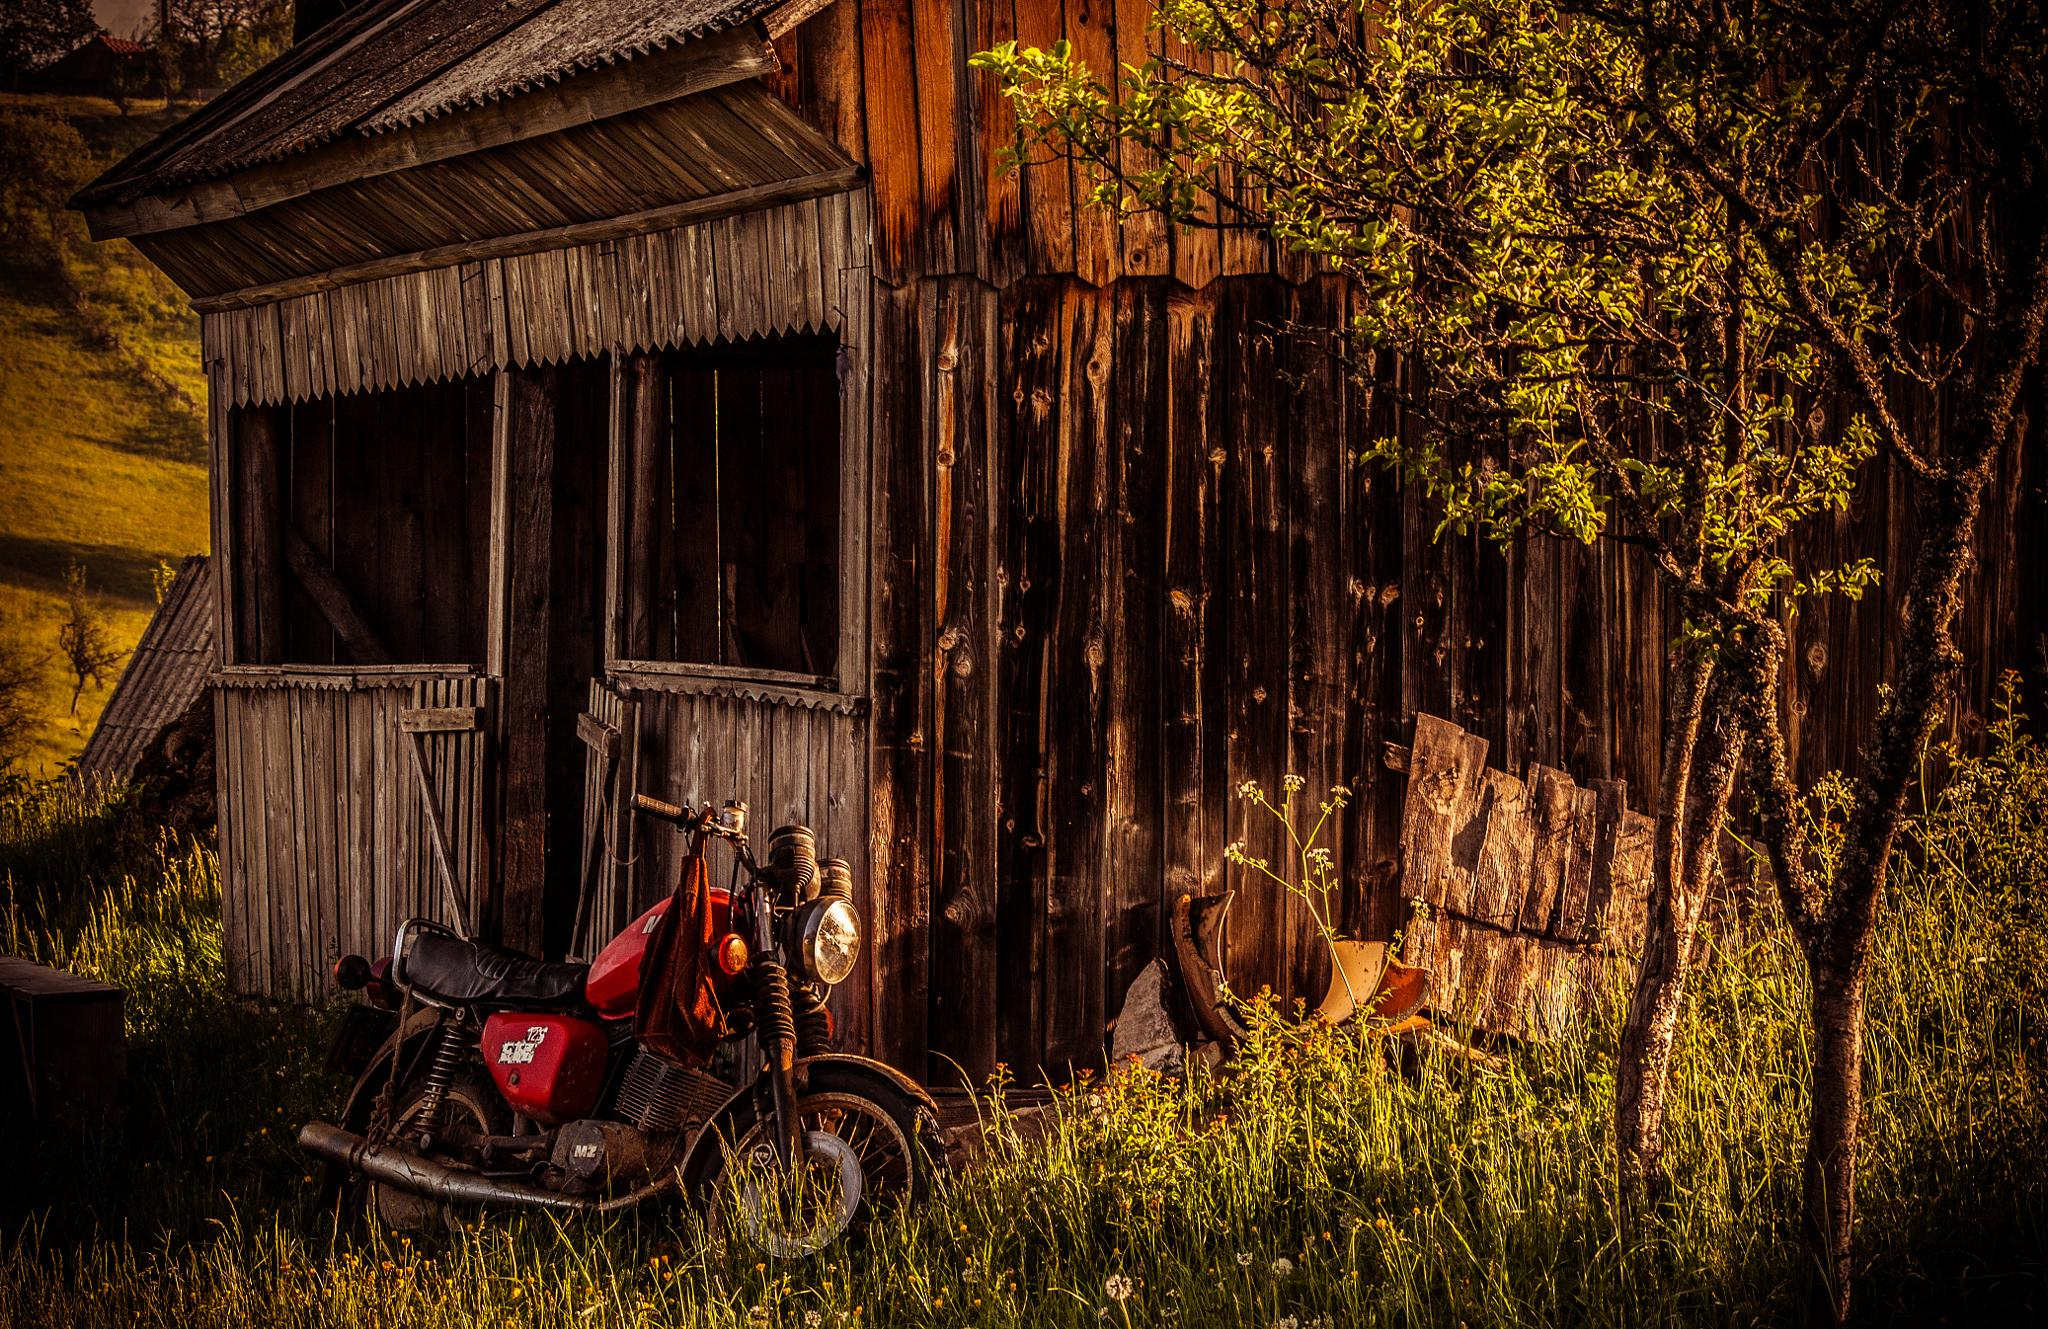 Old motorcycle by Peptan Marius